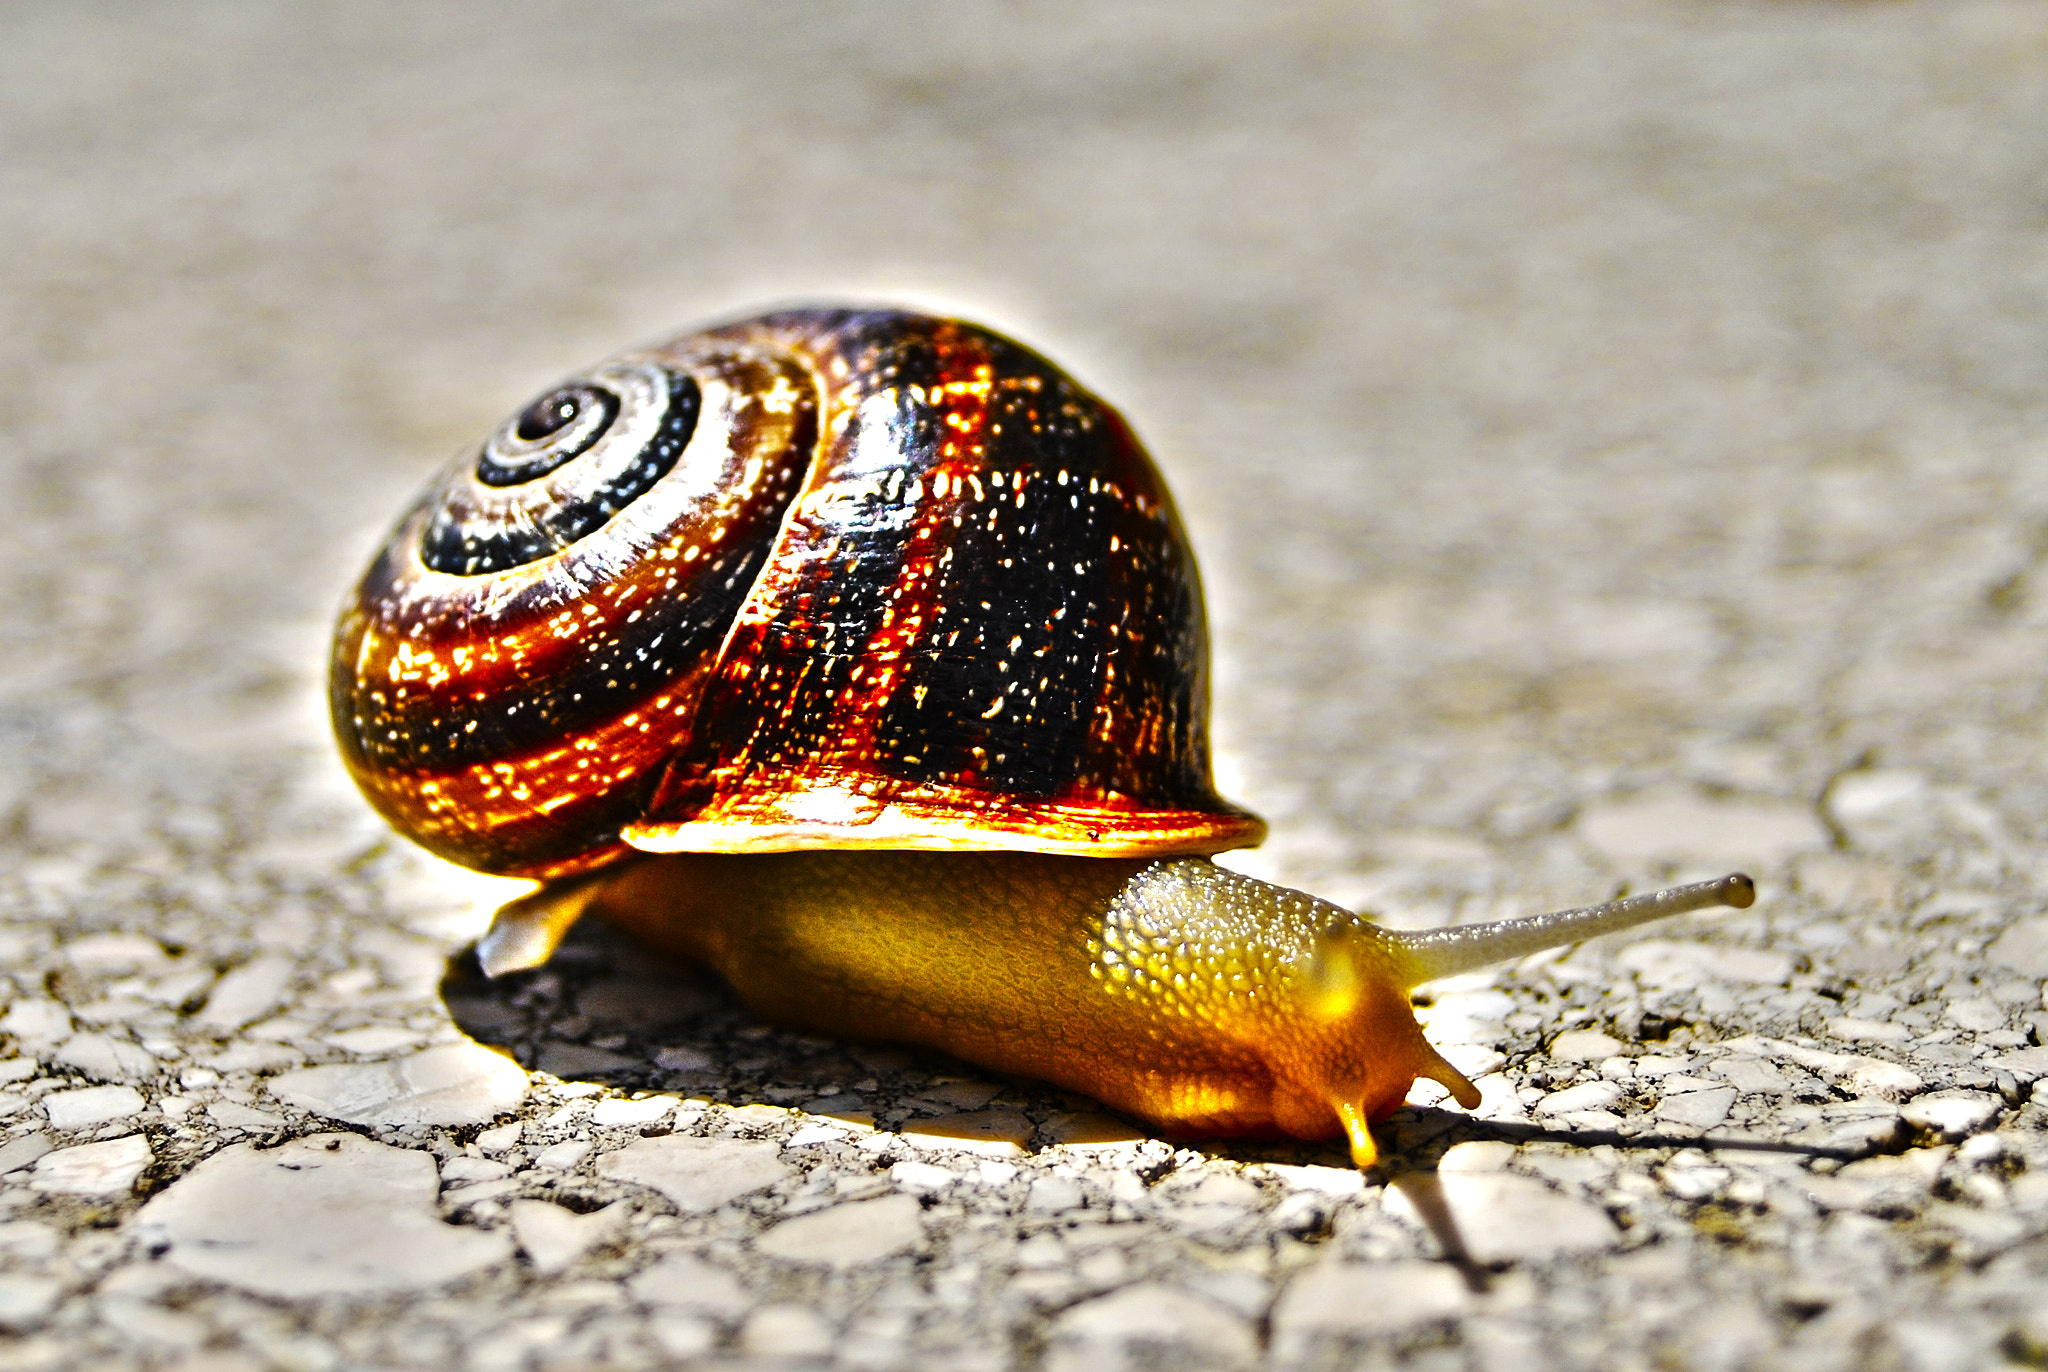 Photograph Caracol by Rubén Torregrosa on 500px